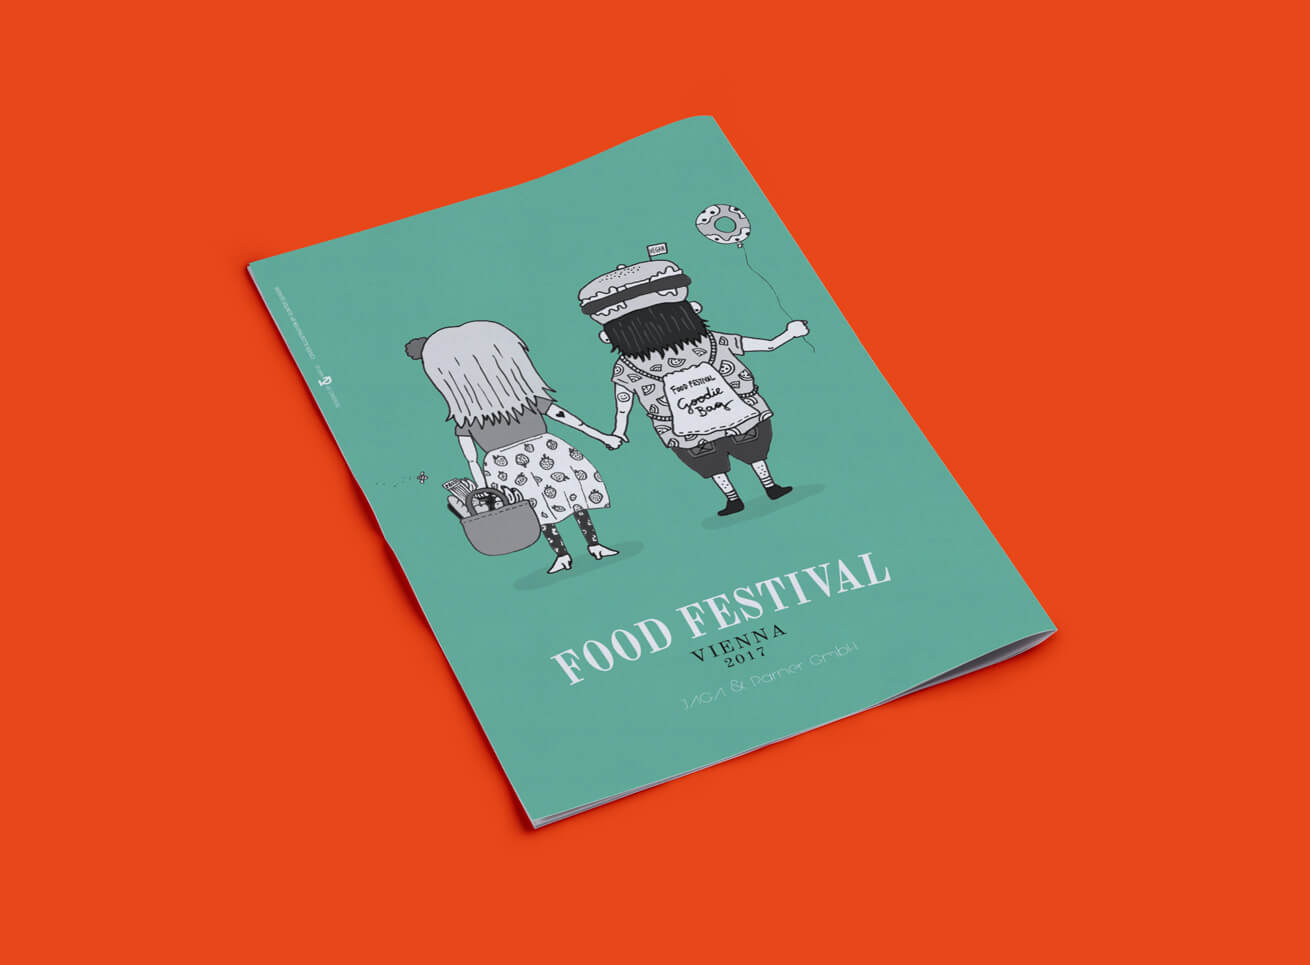 Food Festival Broschüre Grafikdesign